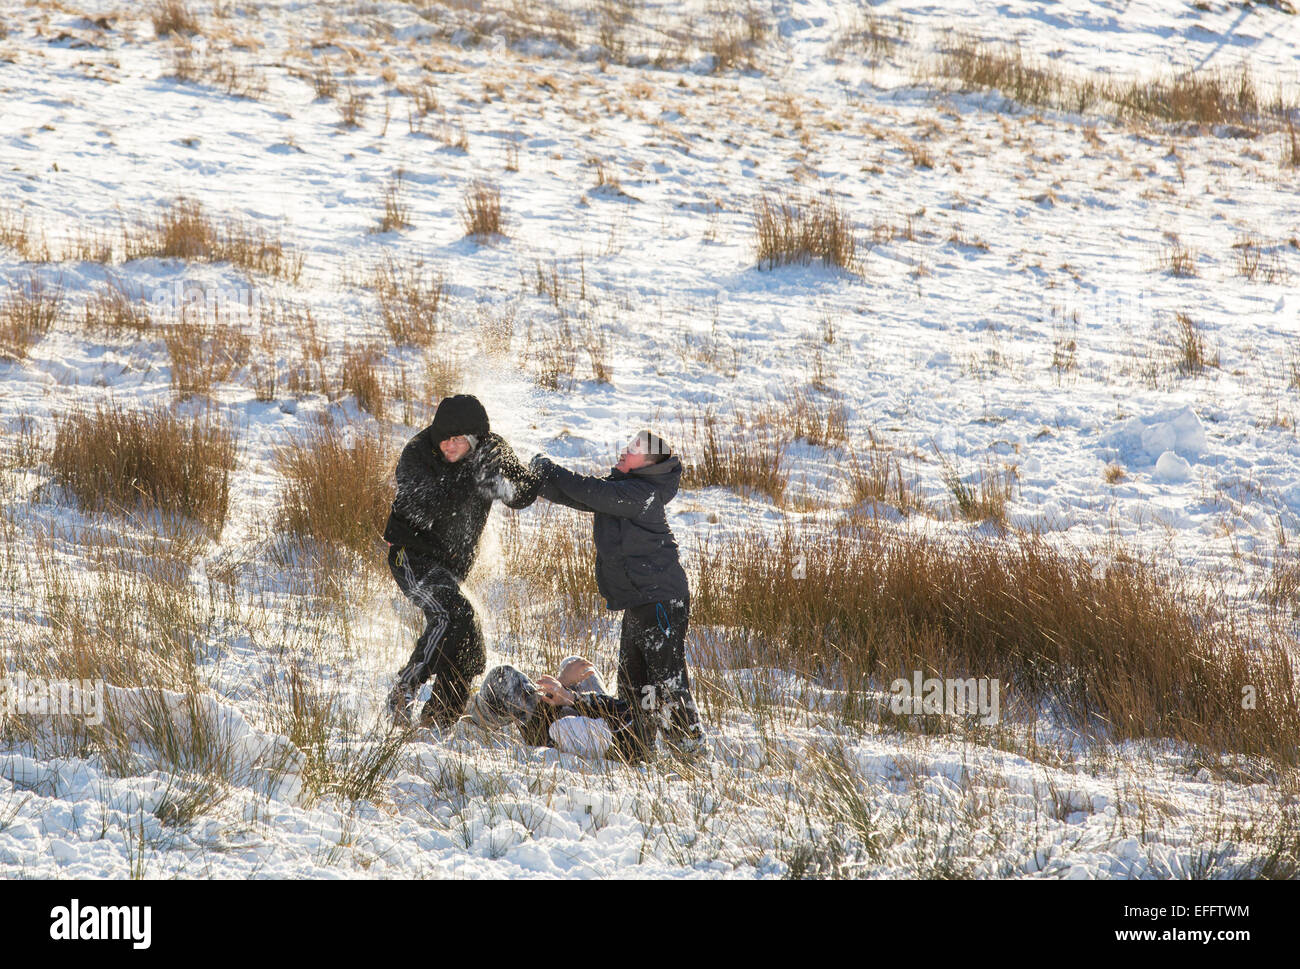 Children having a snow ball fight on Kirkstone Pass in snow, Lake District, UK - Stock Image